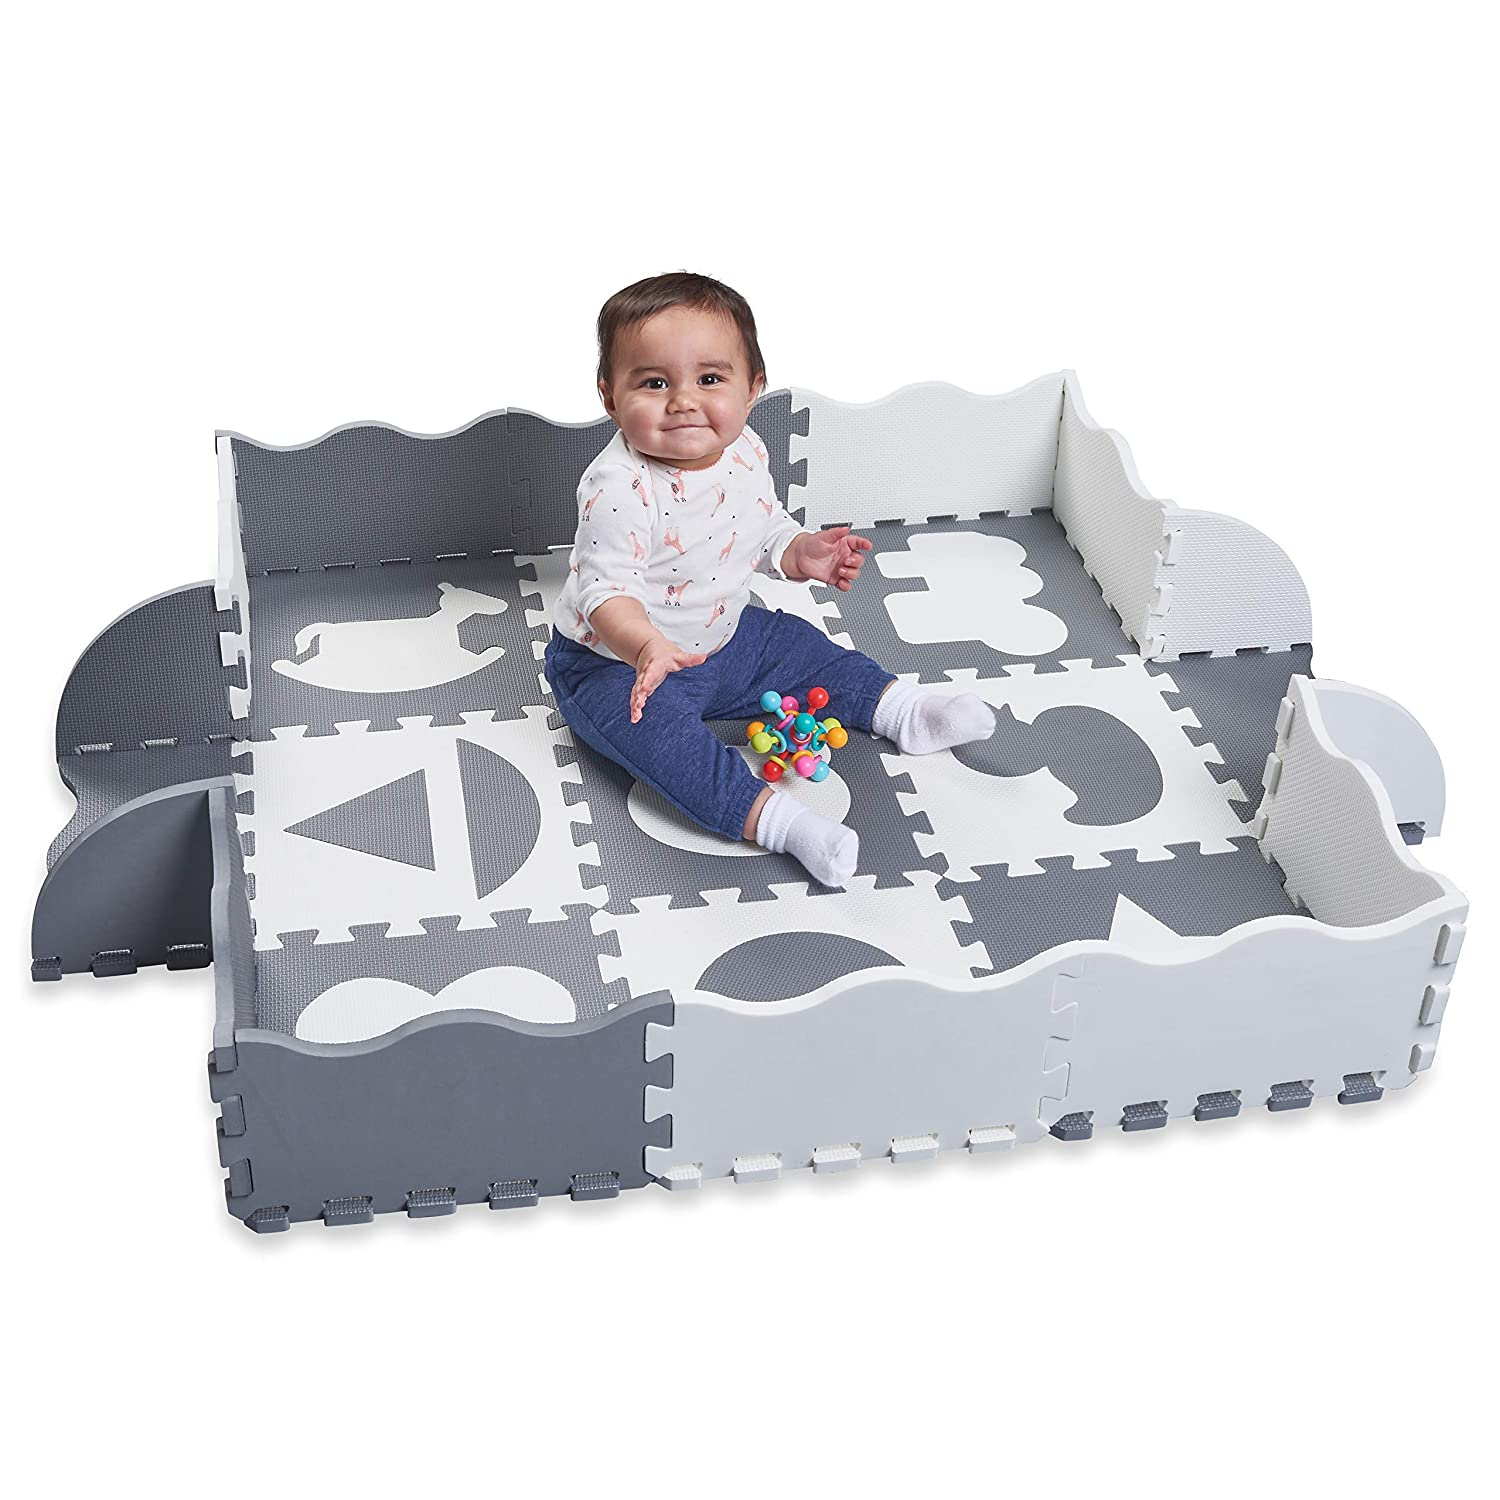 Wee Giggles Non-Toxic Foam Baby Play Mat for Tummy Time, Sitting and Crawling | Grey